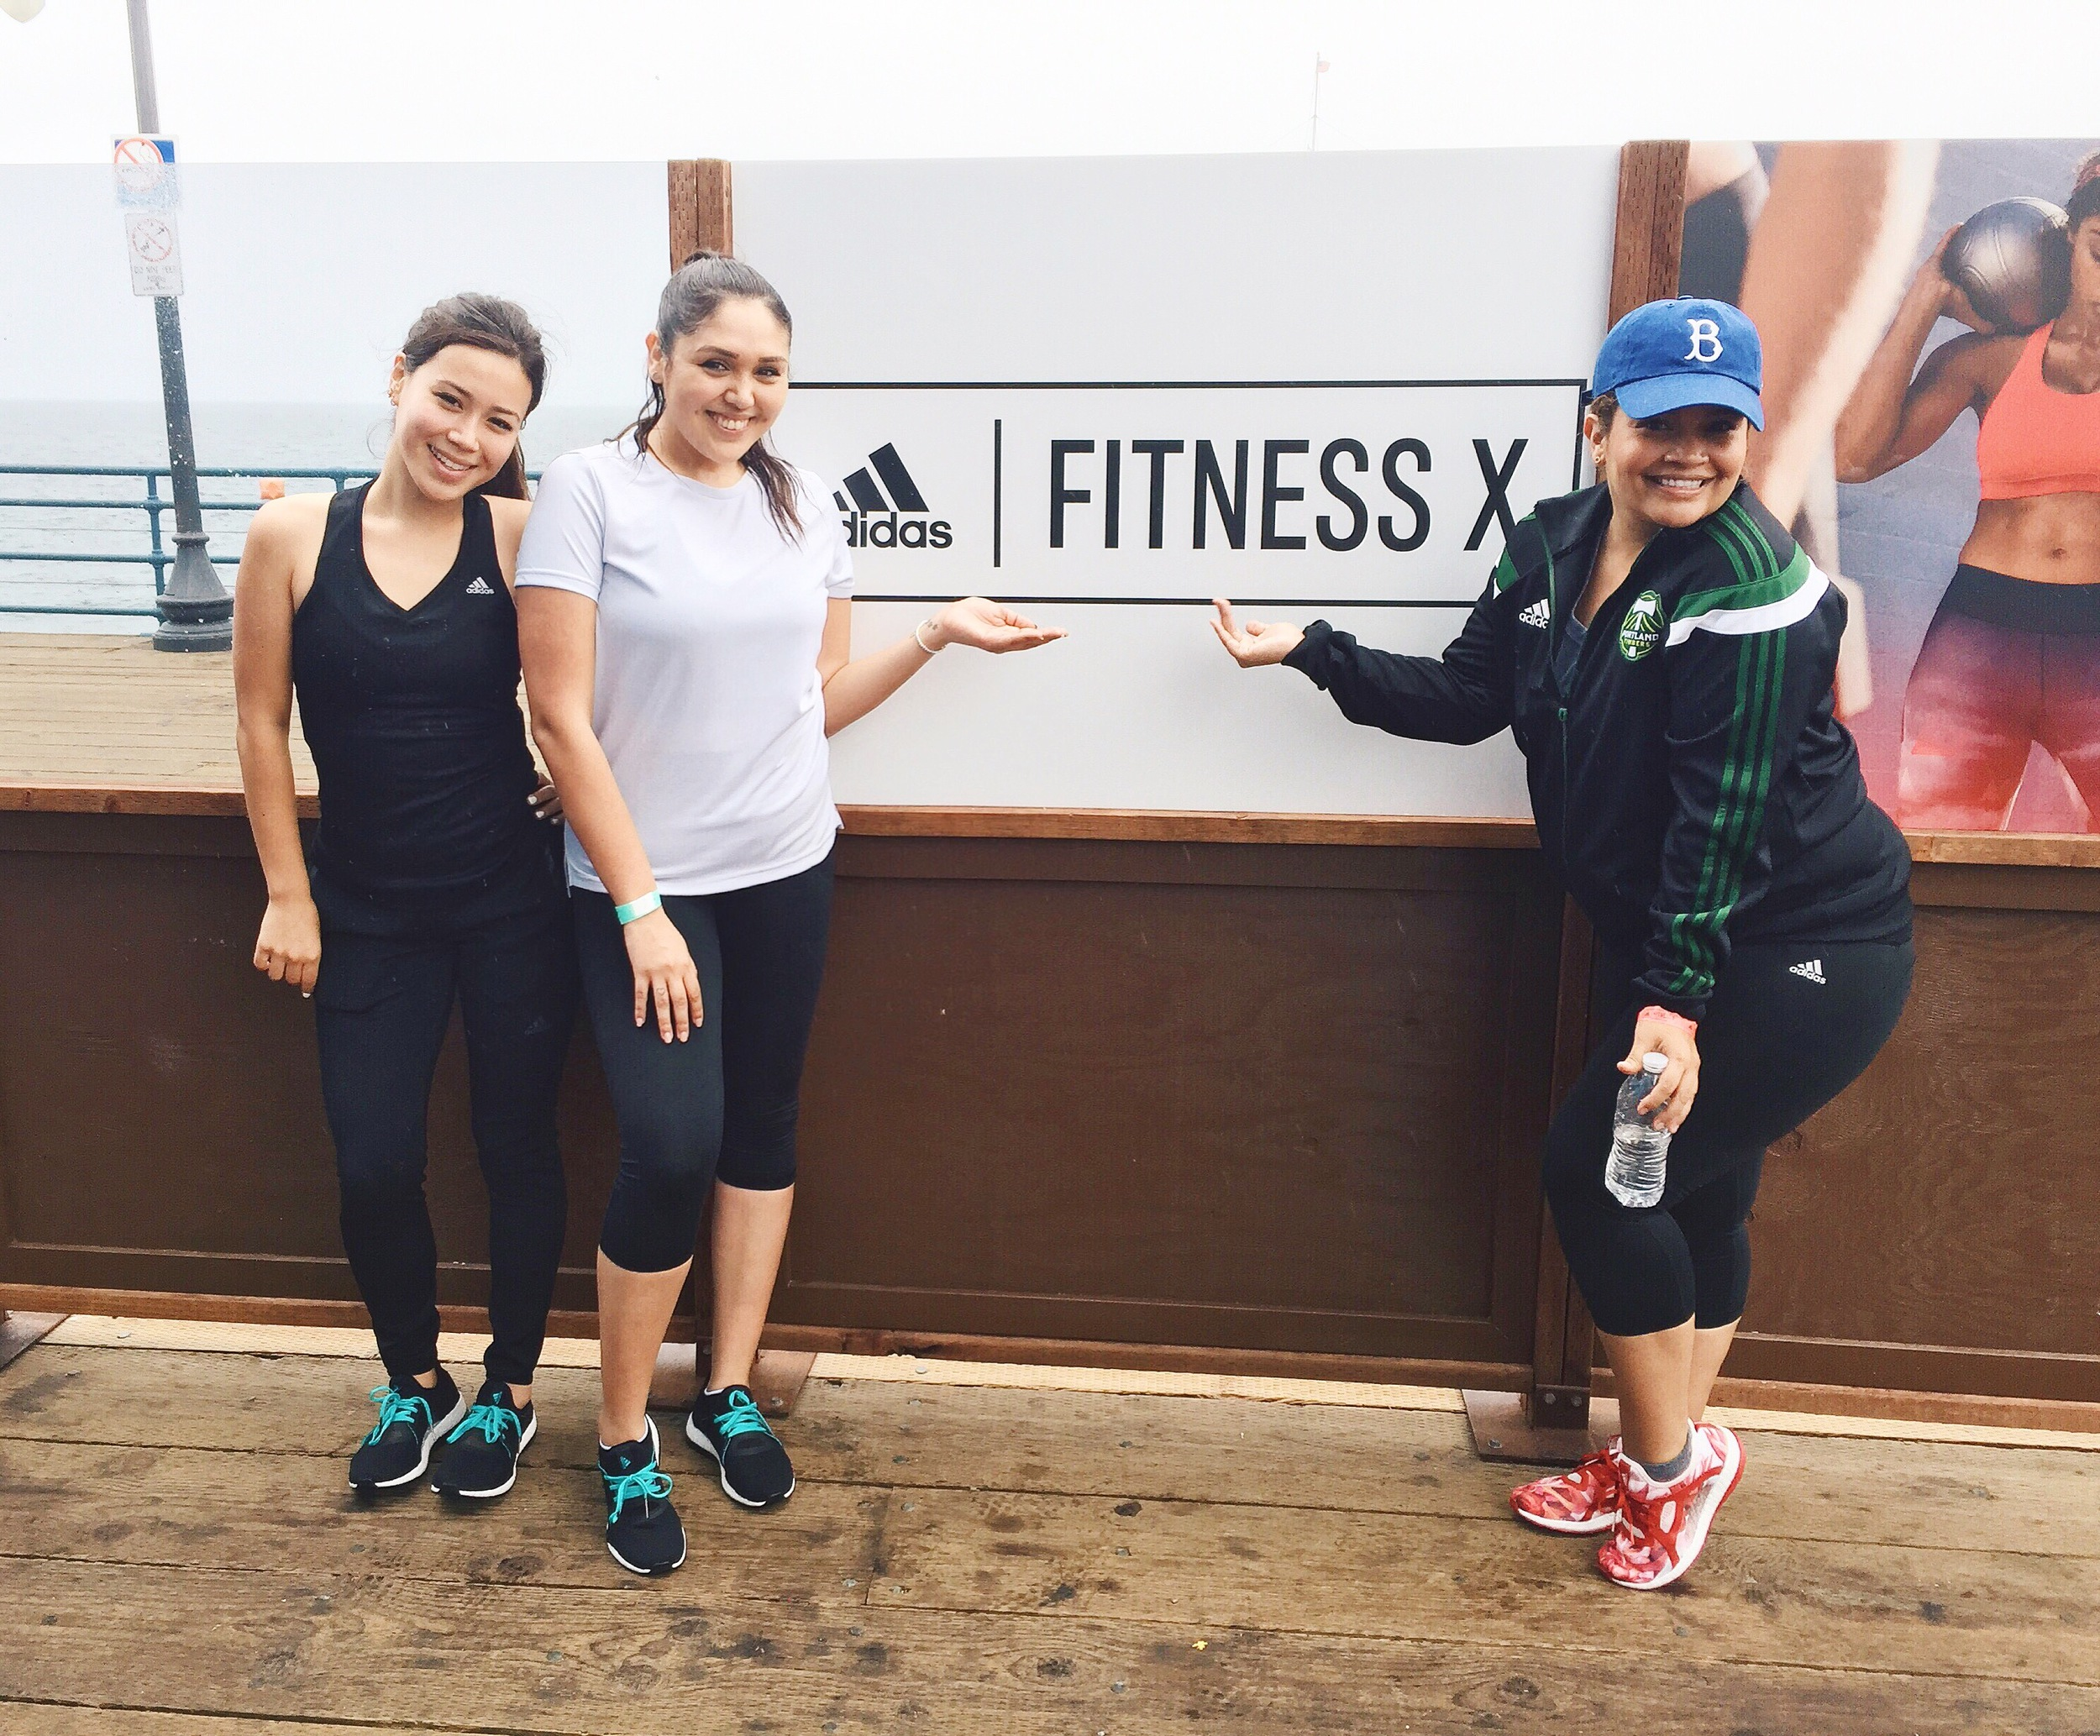 June 11, 2016 - Adidas Fitness X Launch Event ( Read More Here )